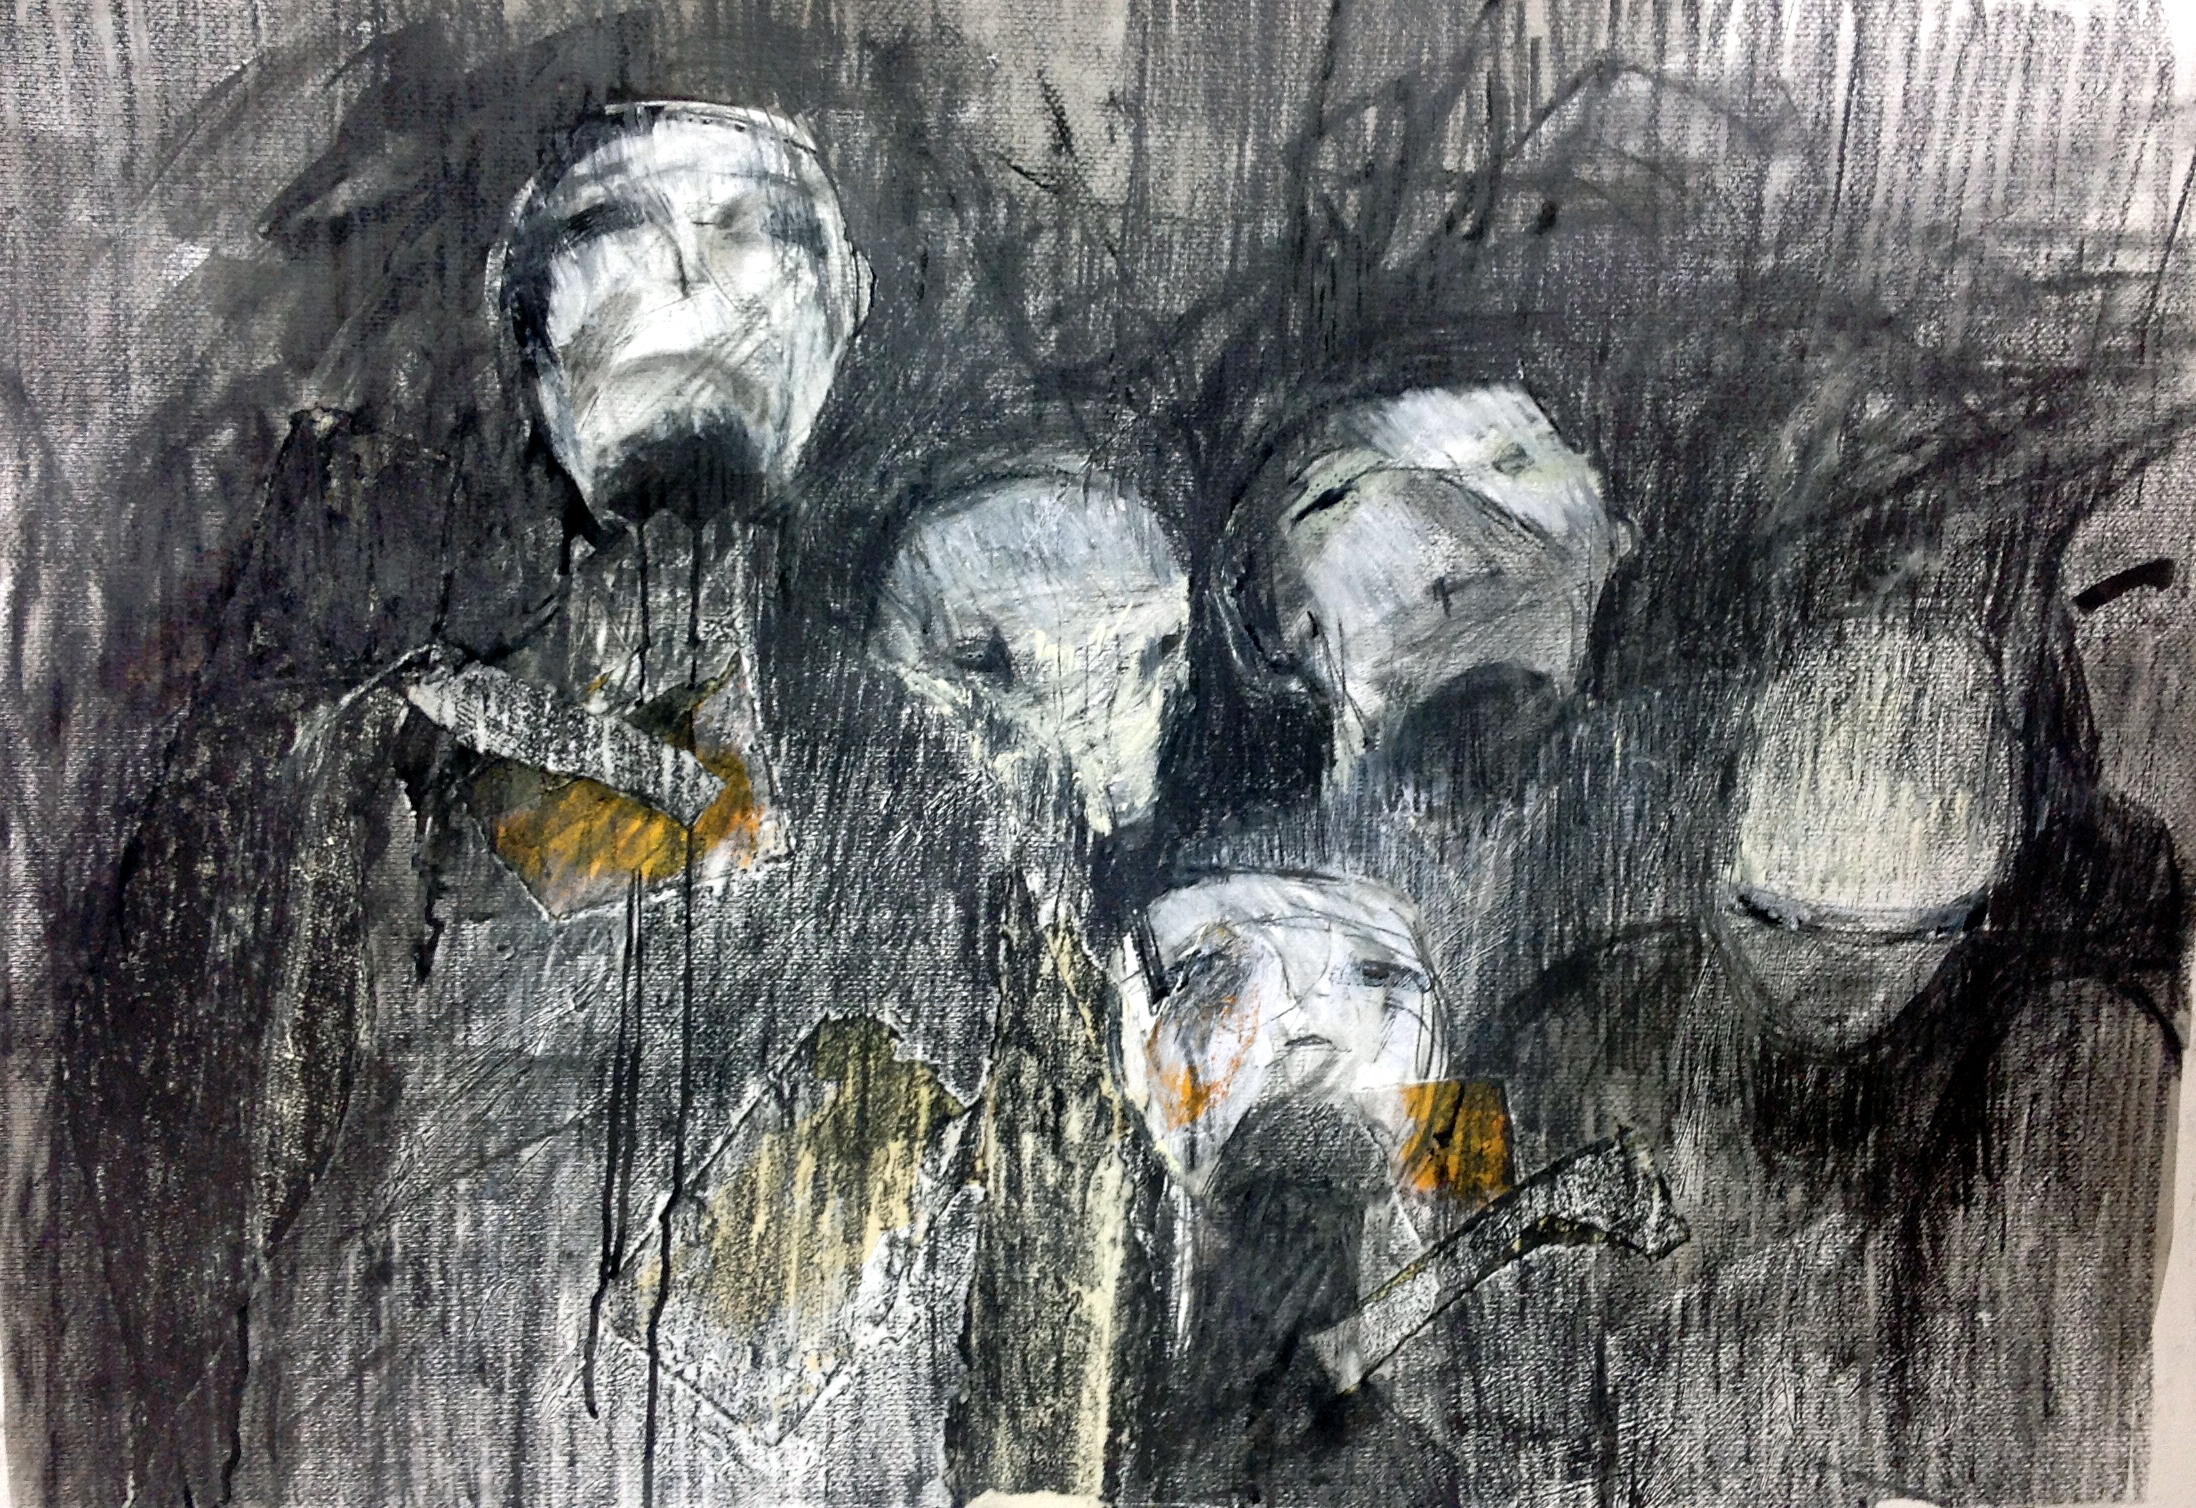 Figures 29 - Charcoal and graphite on paper, 68x96cm. 2014